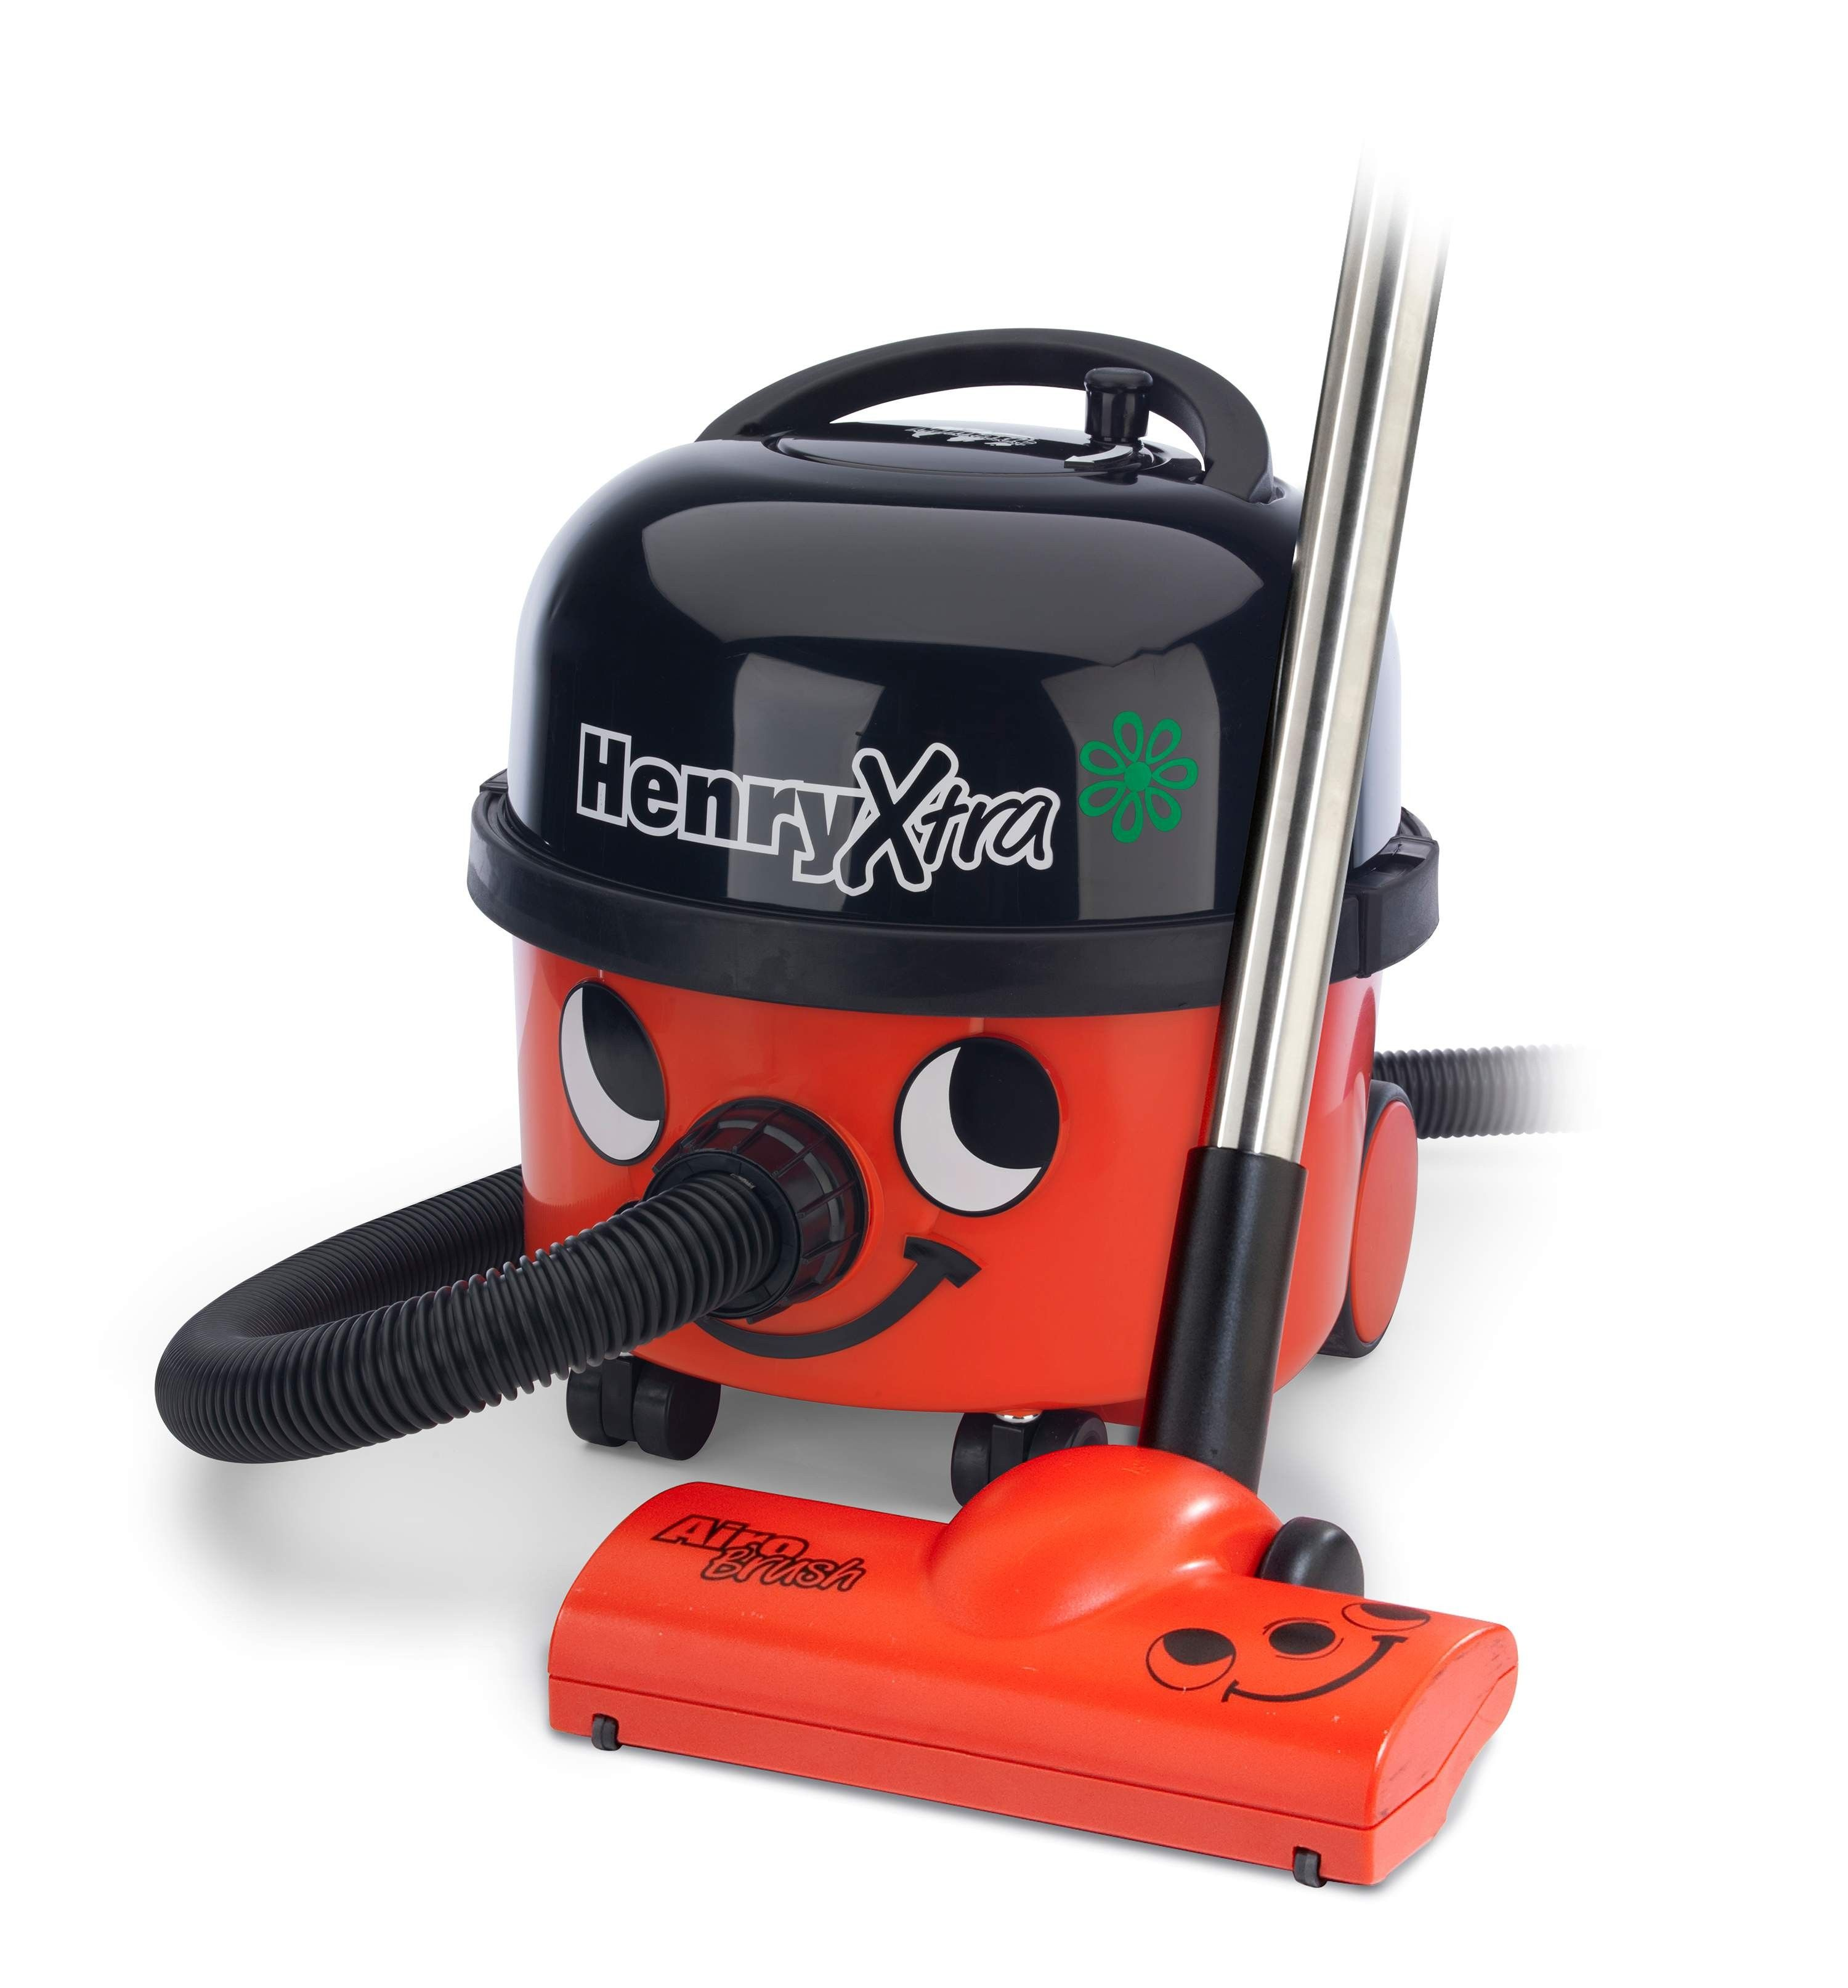 Henry Xtra Is, In Every Way, A True Henry With All The Standard Features  And More. The Unique AiroBrush Provides A Superb Level Of Carpet Care.